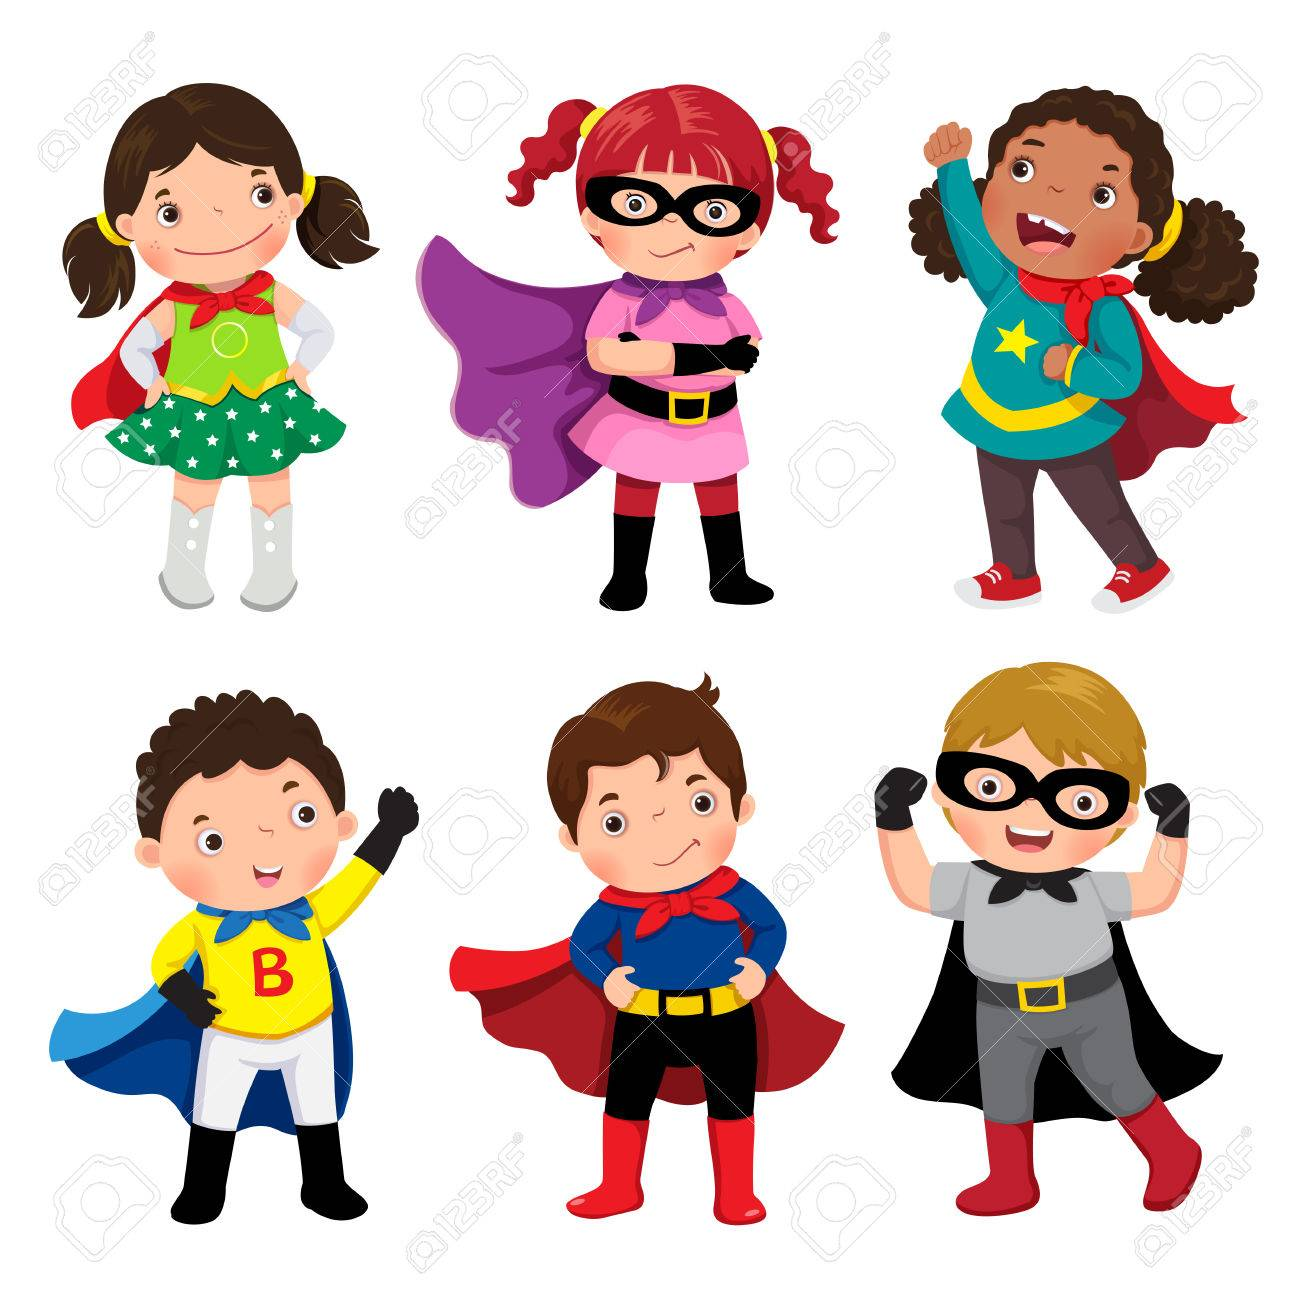 Boys and girls in superhero costumes on white background - 70260224